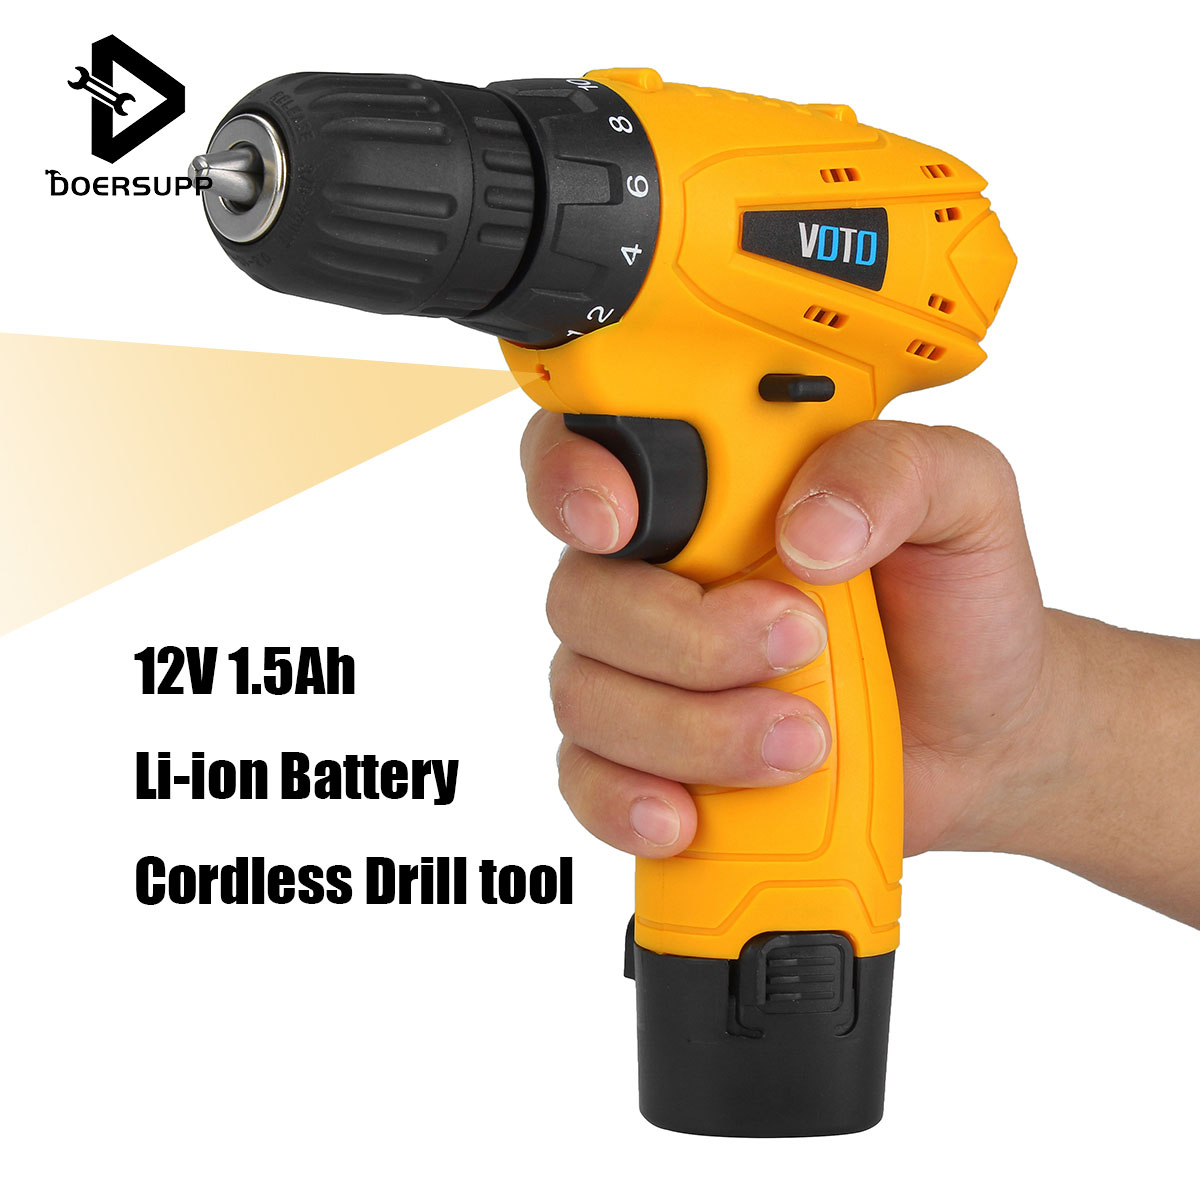 12 Volt Cordless Screwdriver Kit Waterproof Electric Drill Power Tools 10mm Chuck Drill Screwdriver with Lithium-ion Battery велосипед silverback stride 15 2014